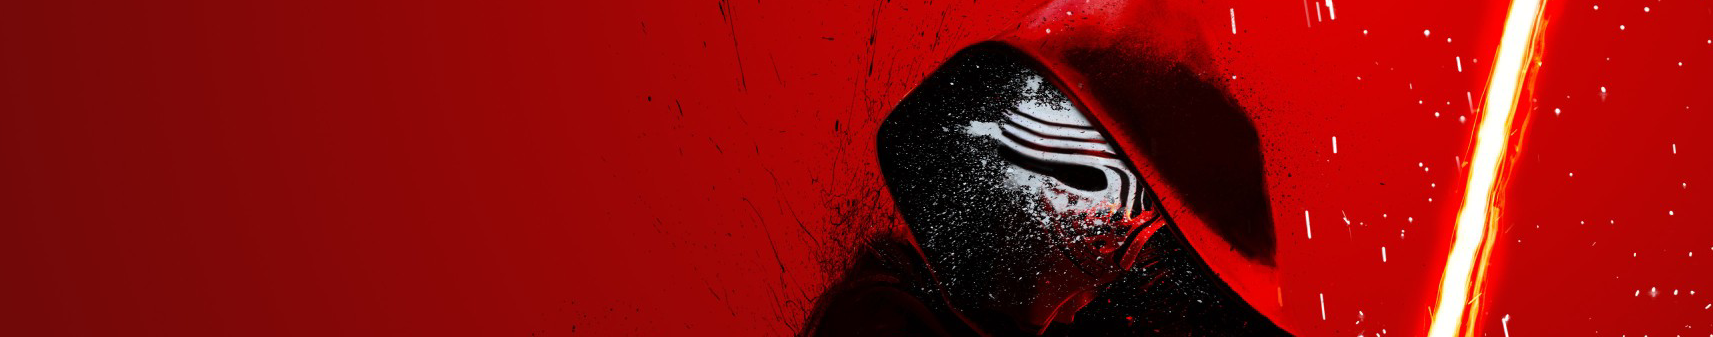 Amazing Kylo Ren Wallpapers